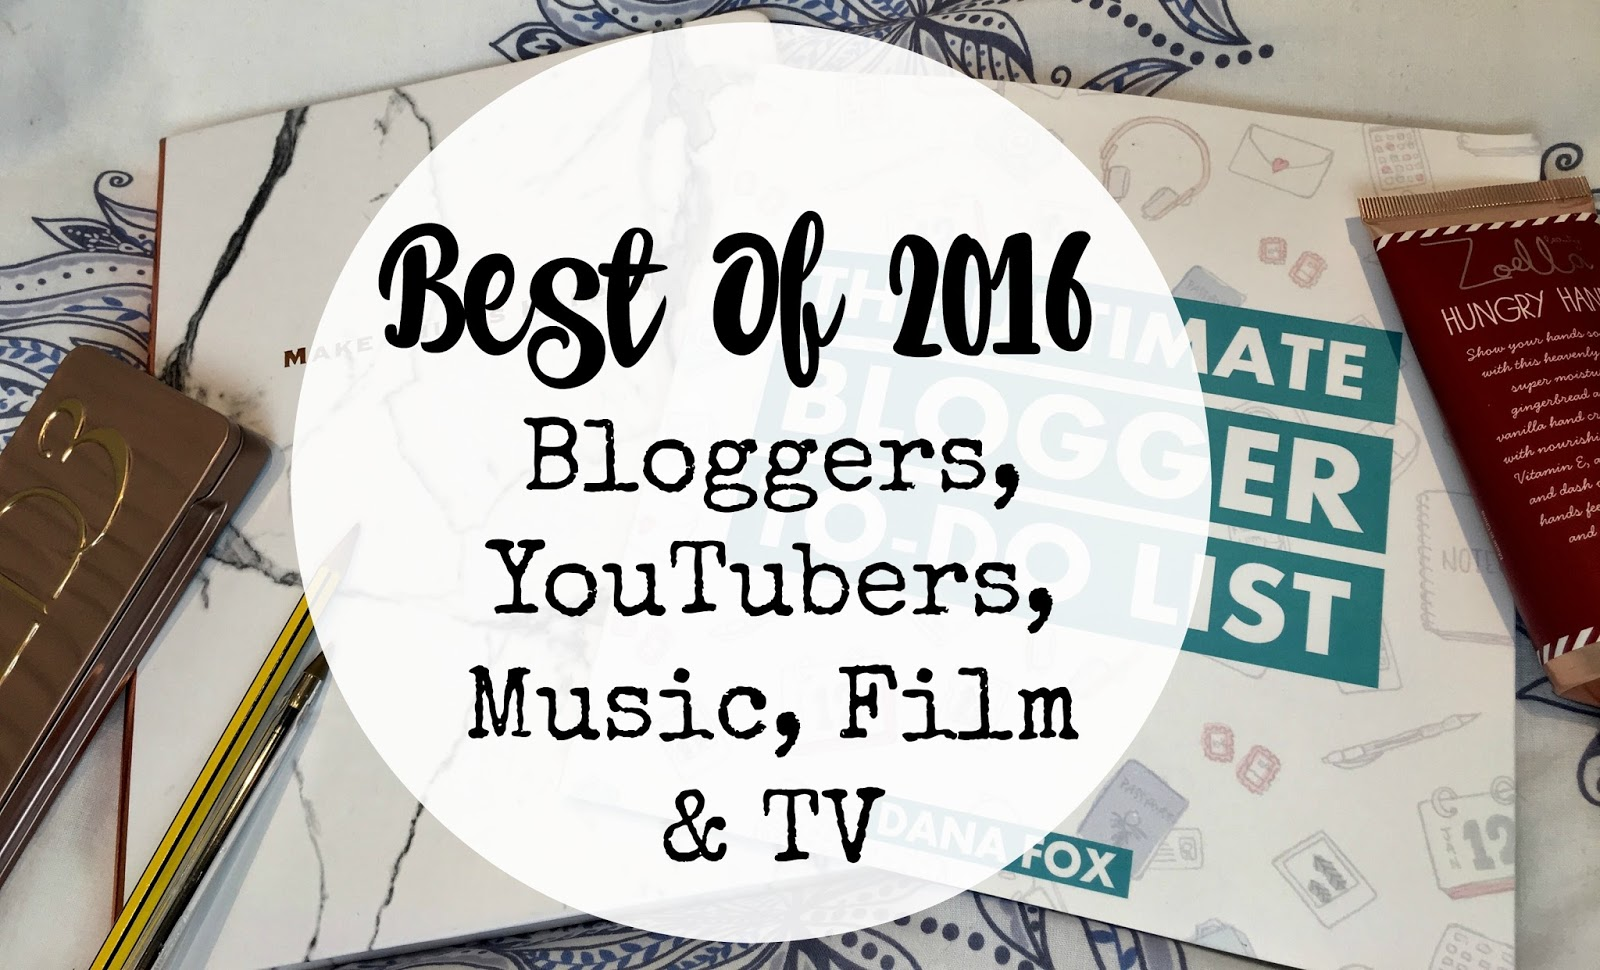 Best Of 2016 (Bloggers, YouTubers, Music, Film & TV)